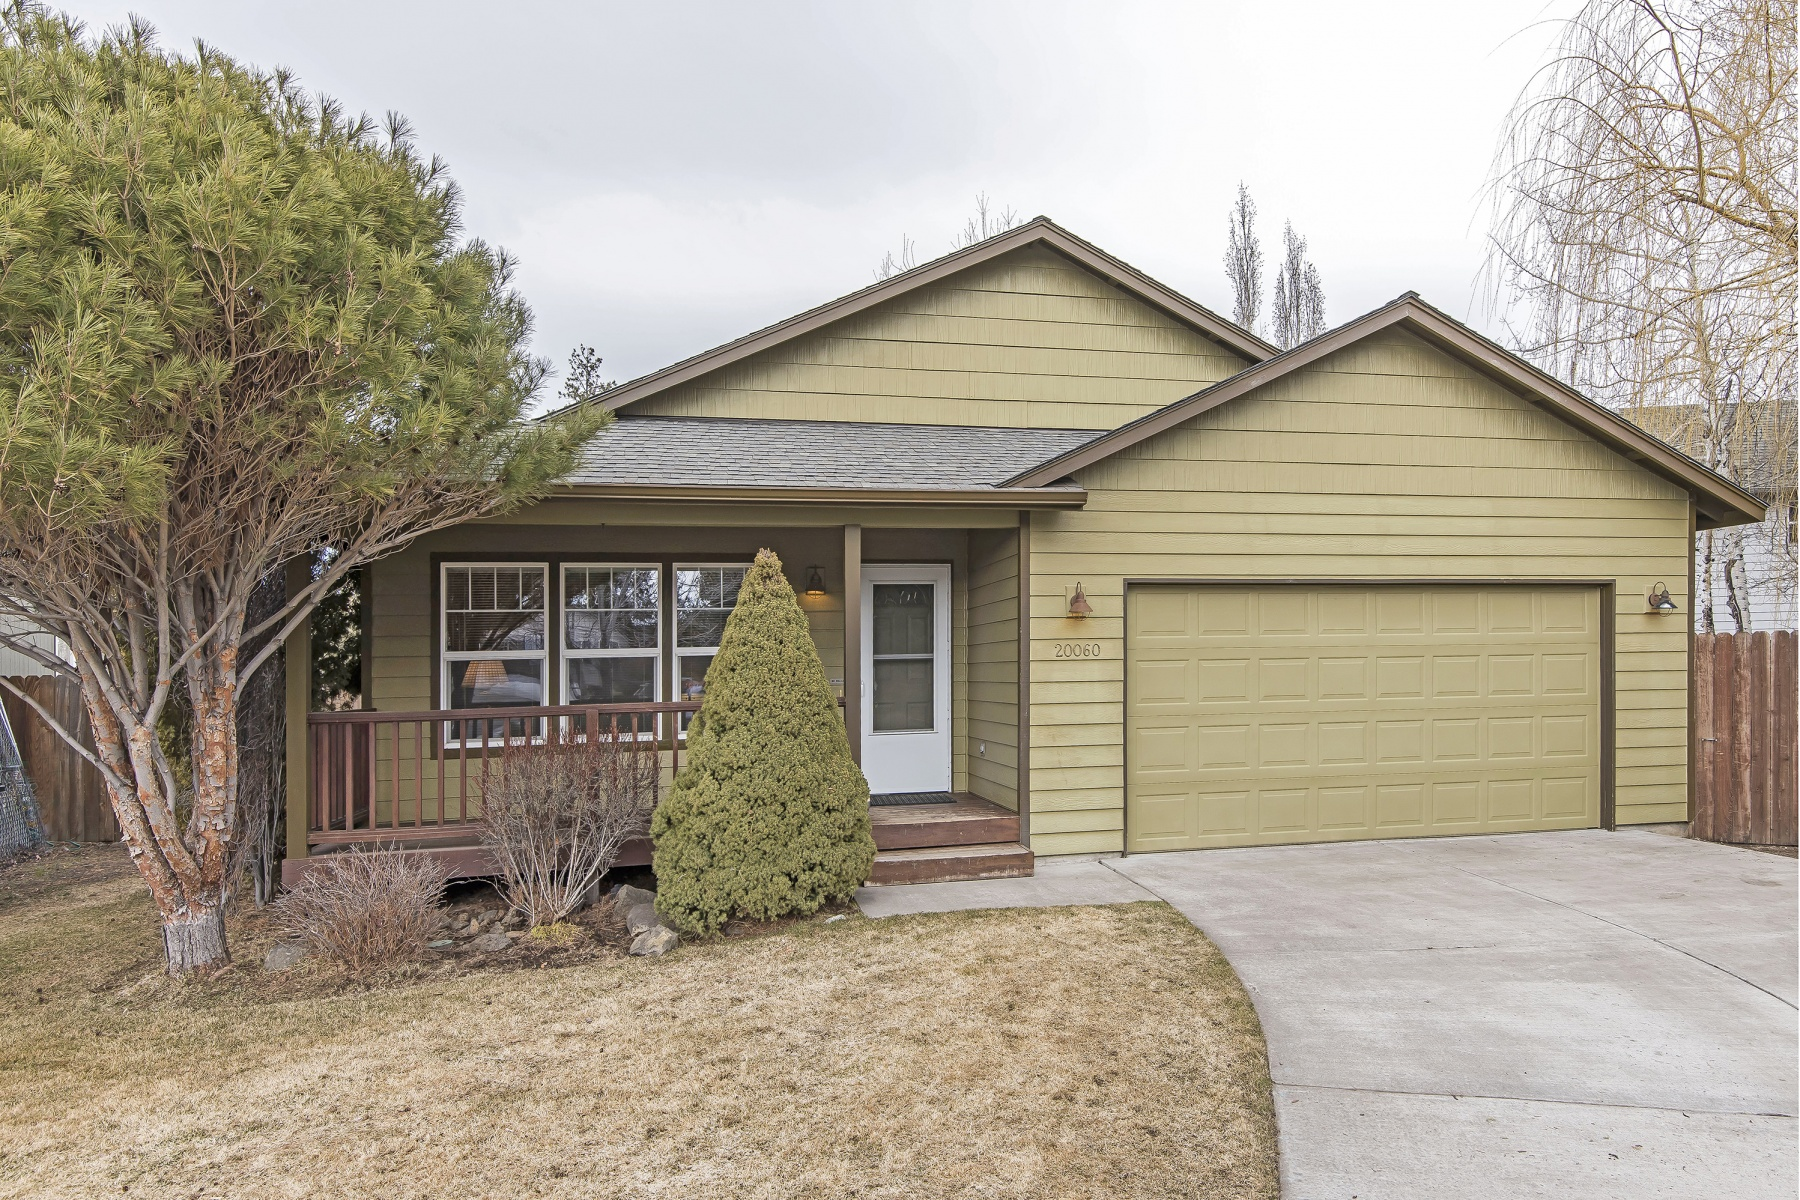 Single Family Home for Sale at 20060 Old Rock House Road, BEND 20060 Old Rock House Rd Bend, Oregon, 97702 United States